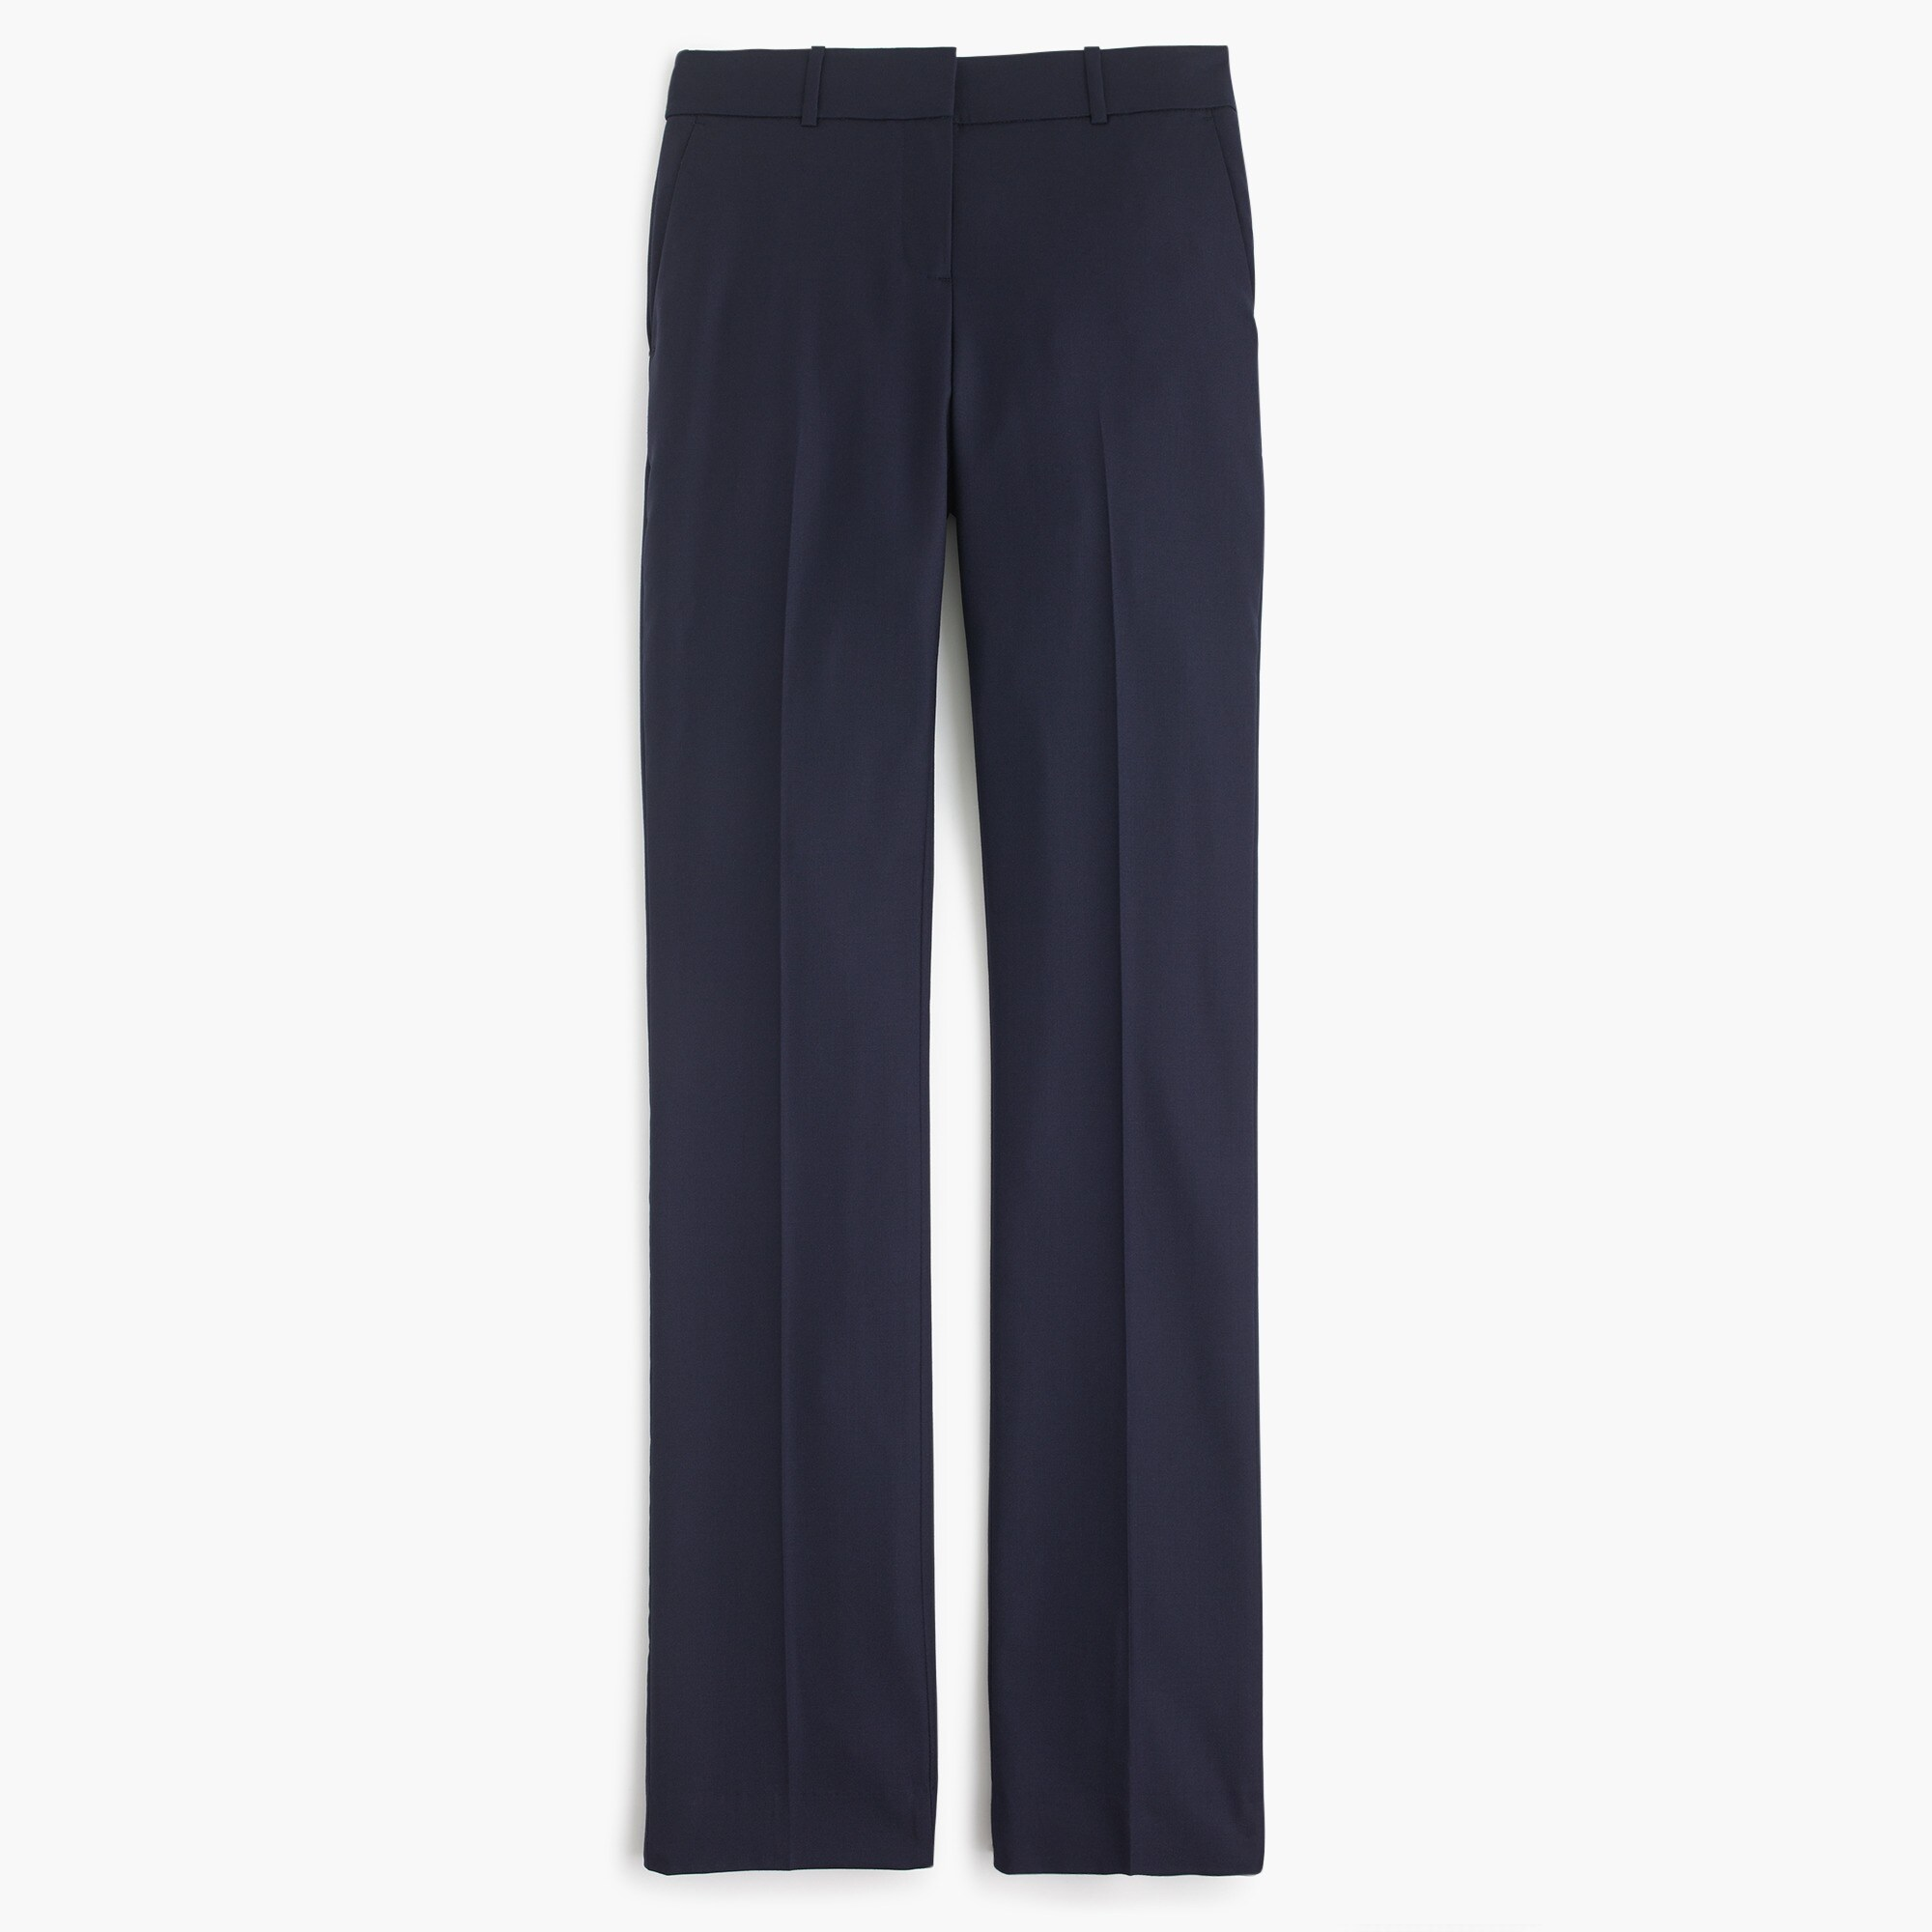 Image 2 for Tall tailored trouser in Italian Super 120s wool